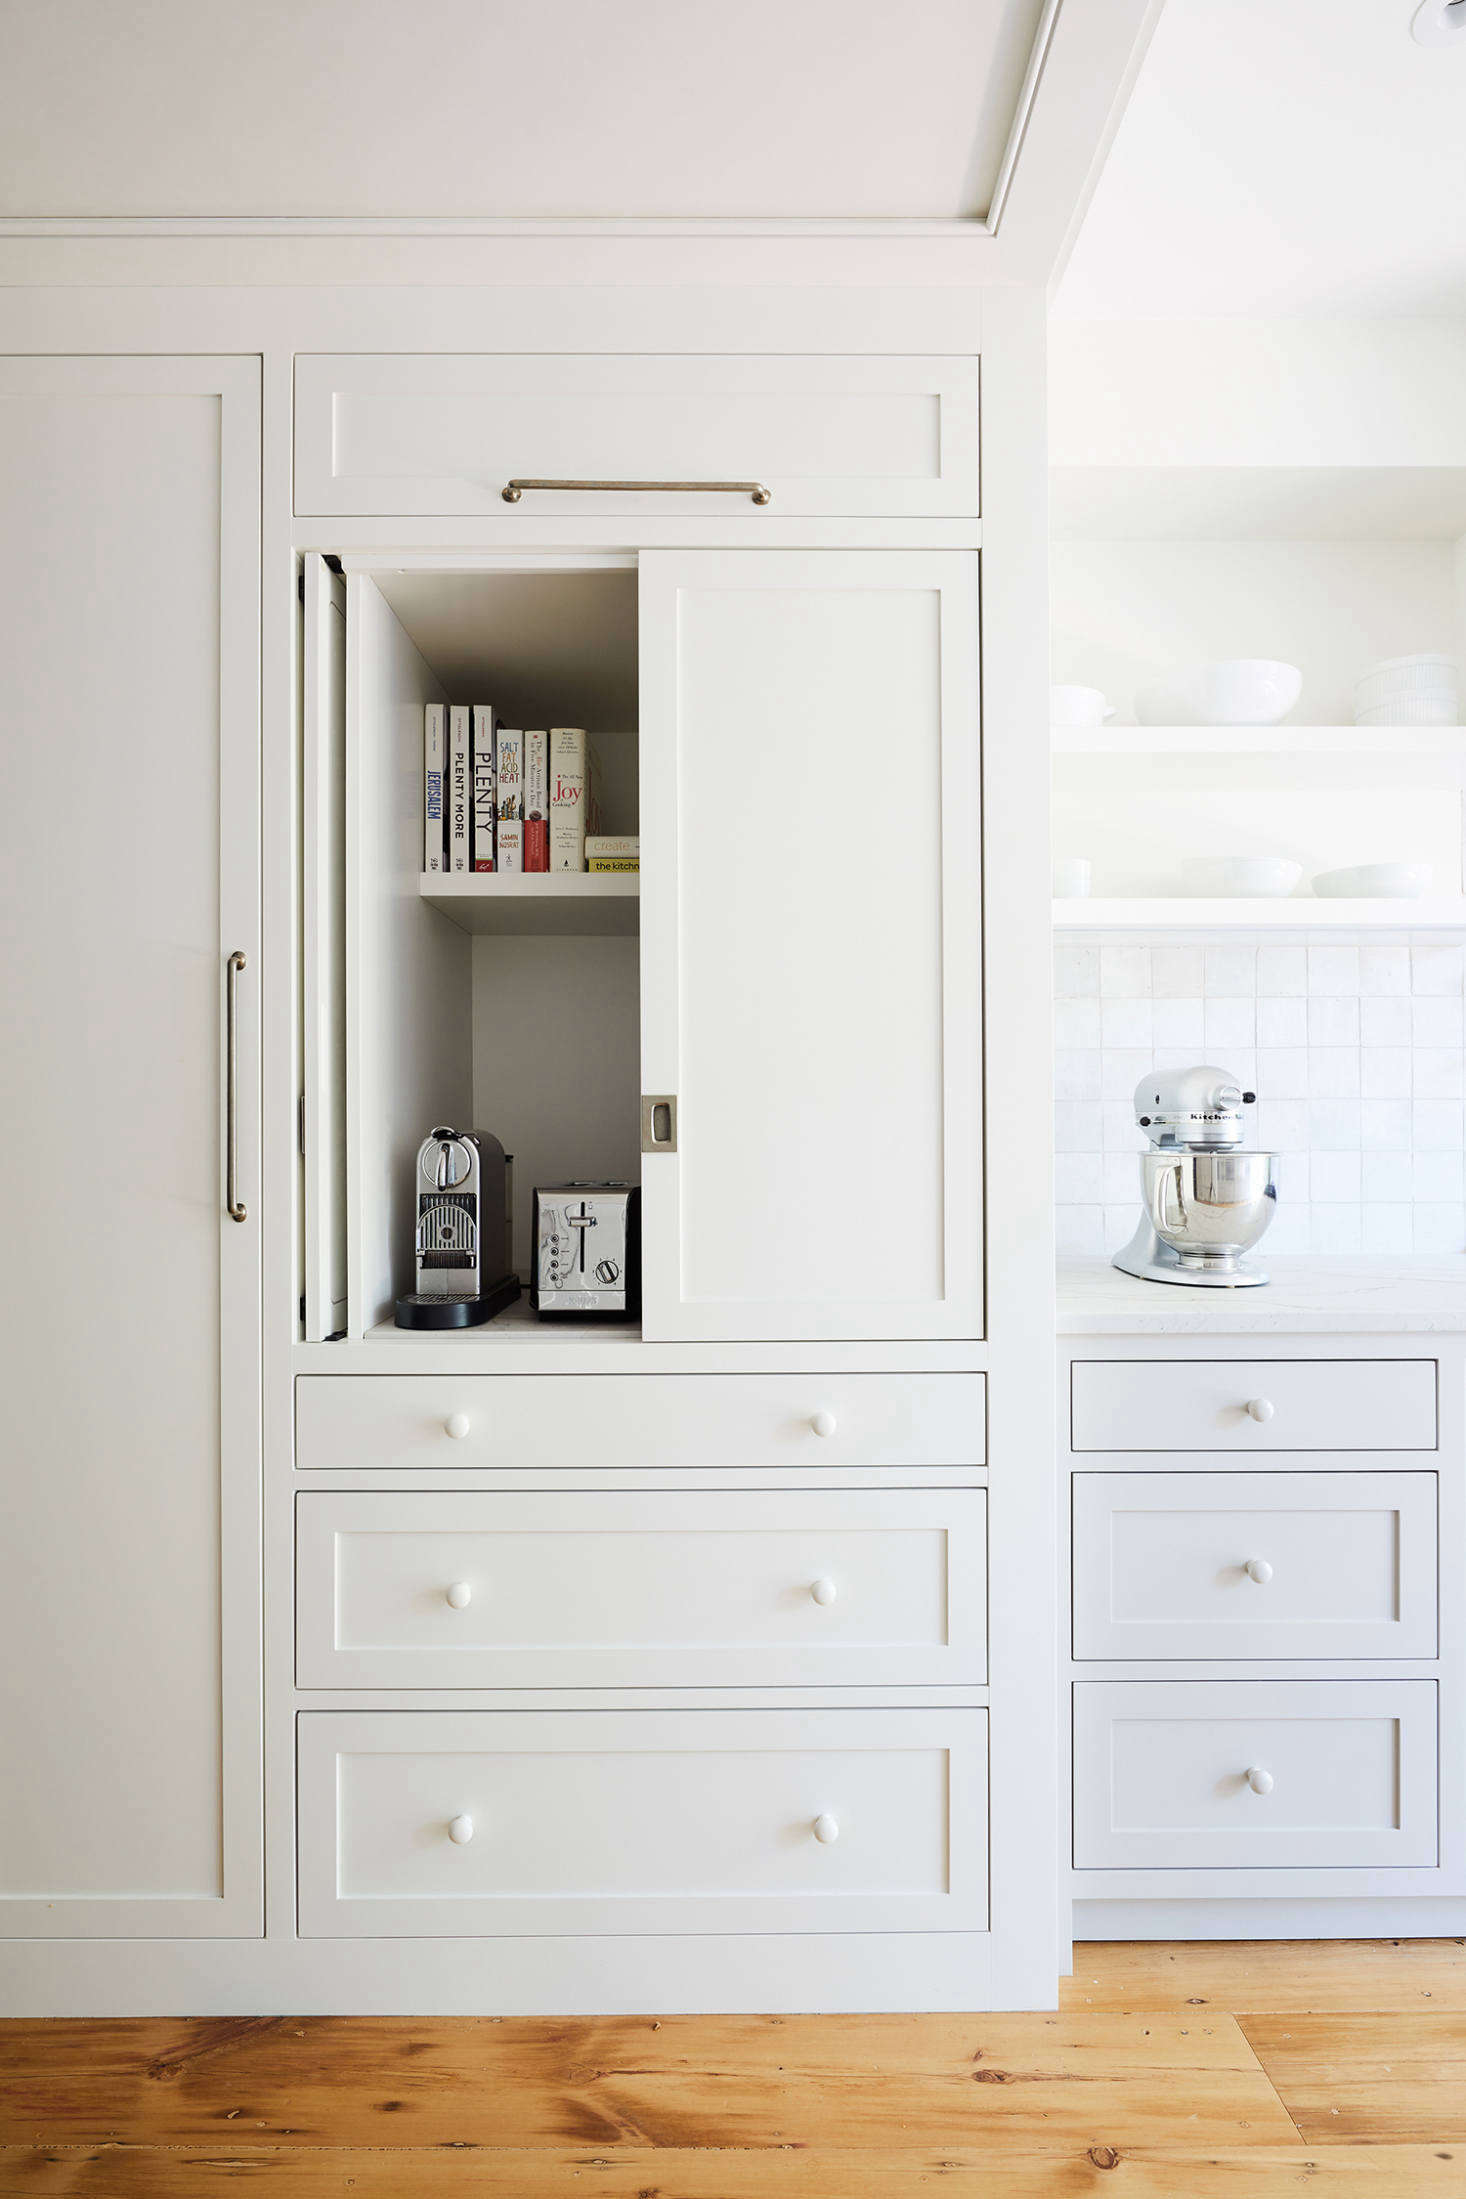 The cabinets have pocket doors and plenty of space for appliances and cookbooks. Report the owners, &#8